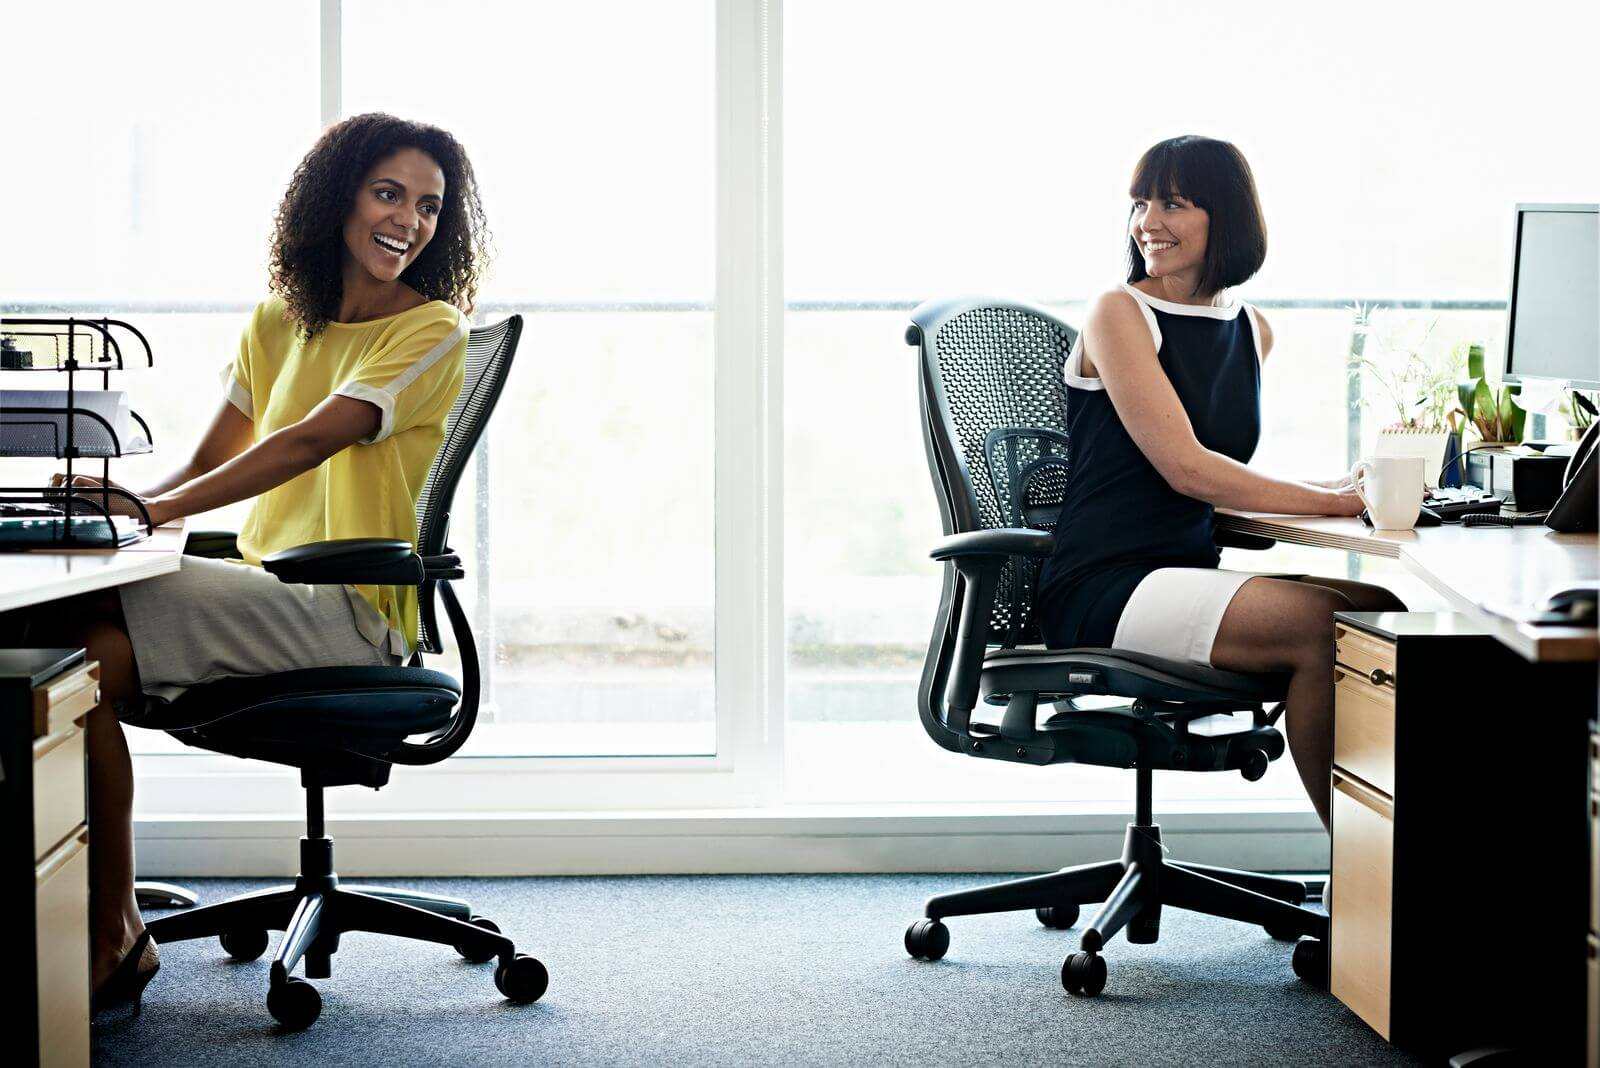 Female workers in office chairs